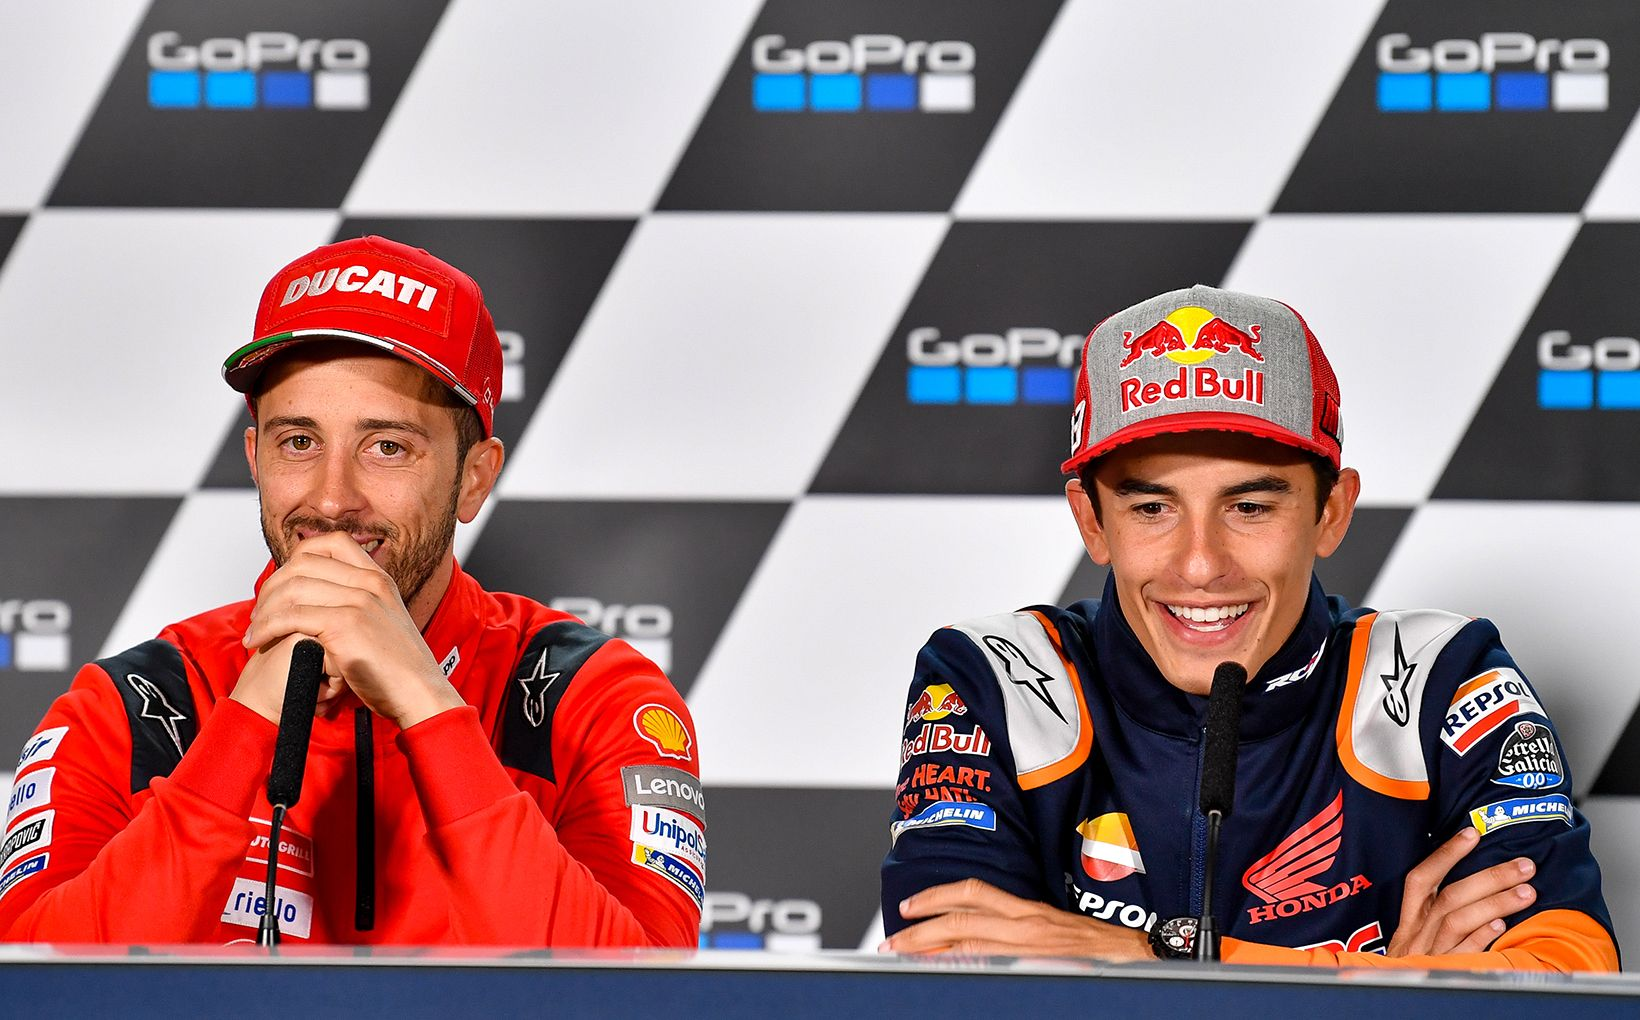 Andrea Dovizioso and Marc Marquez